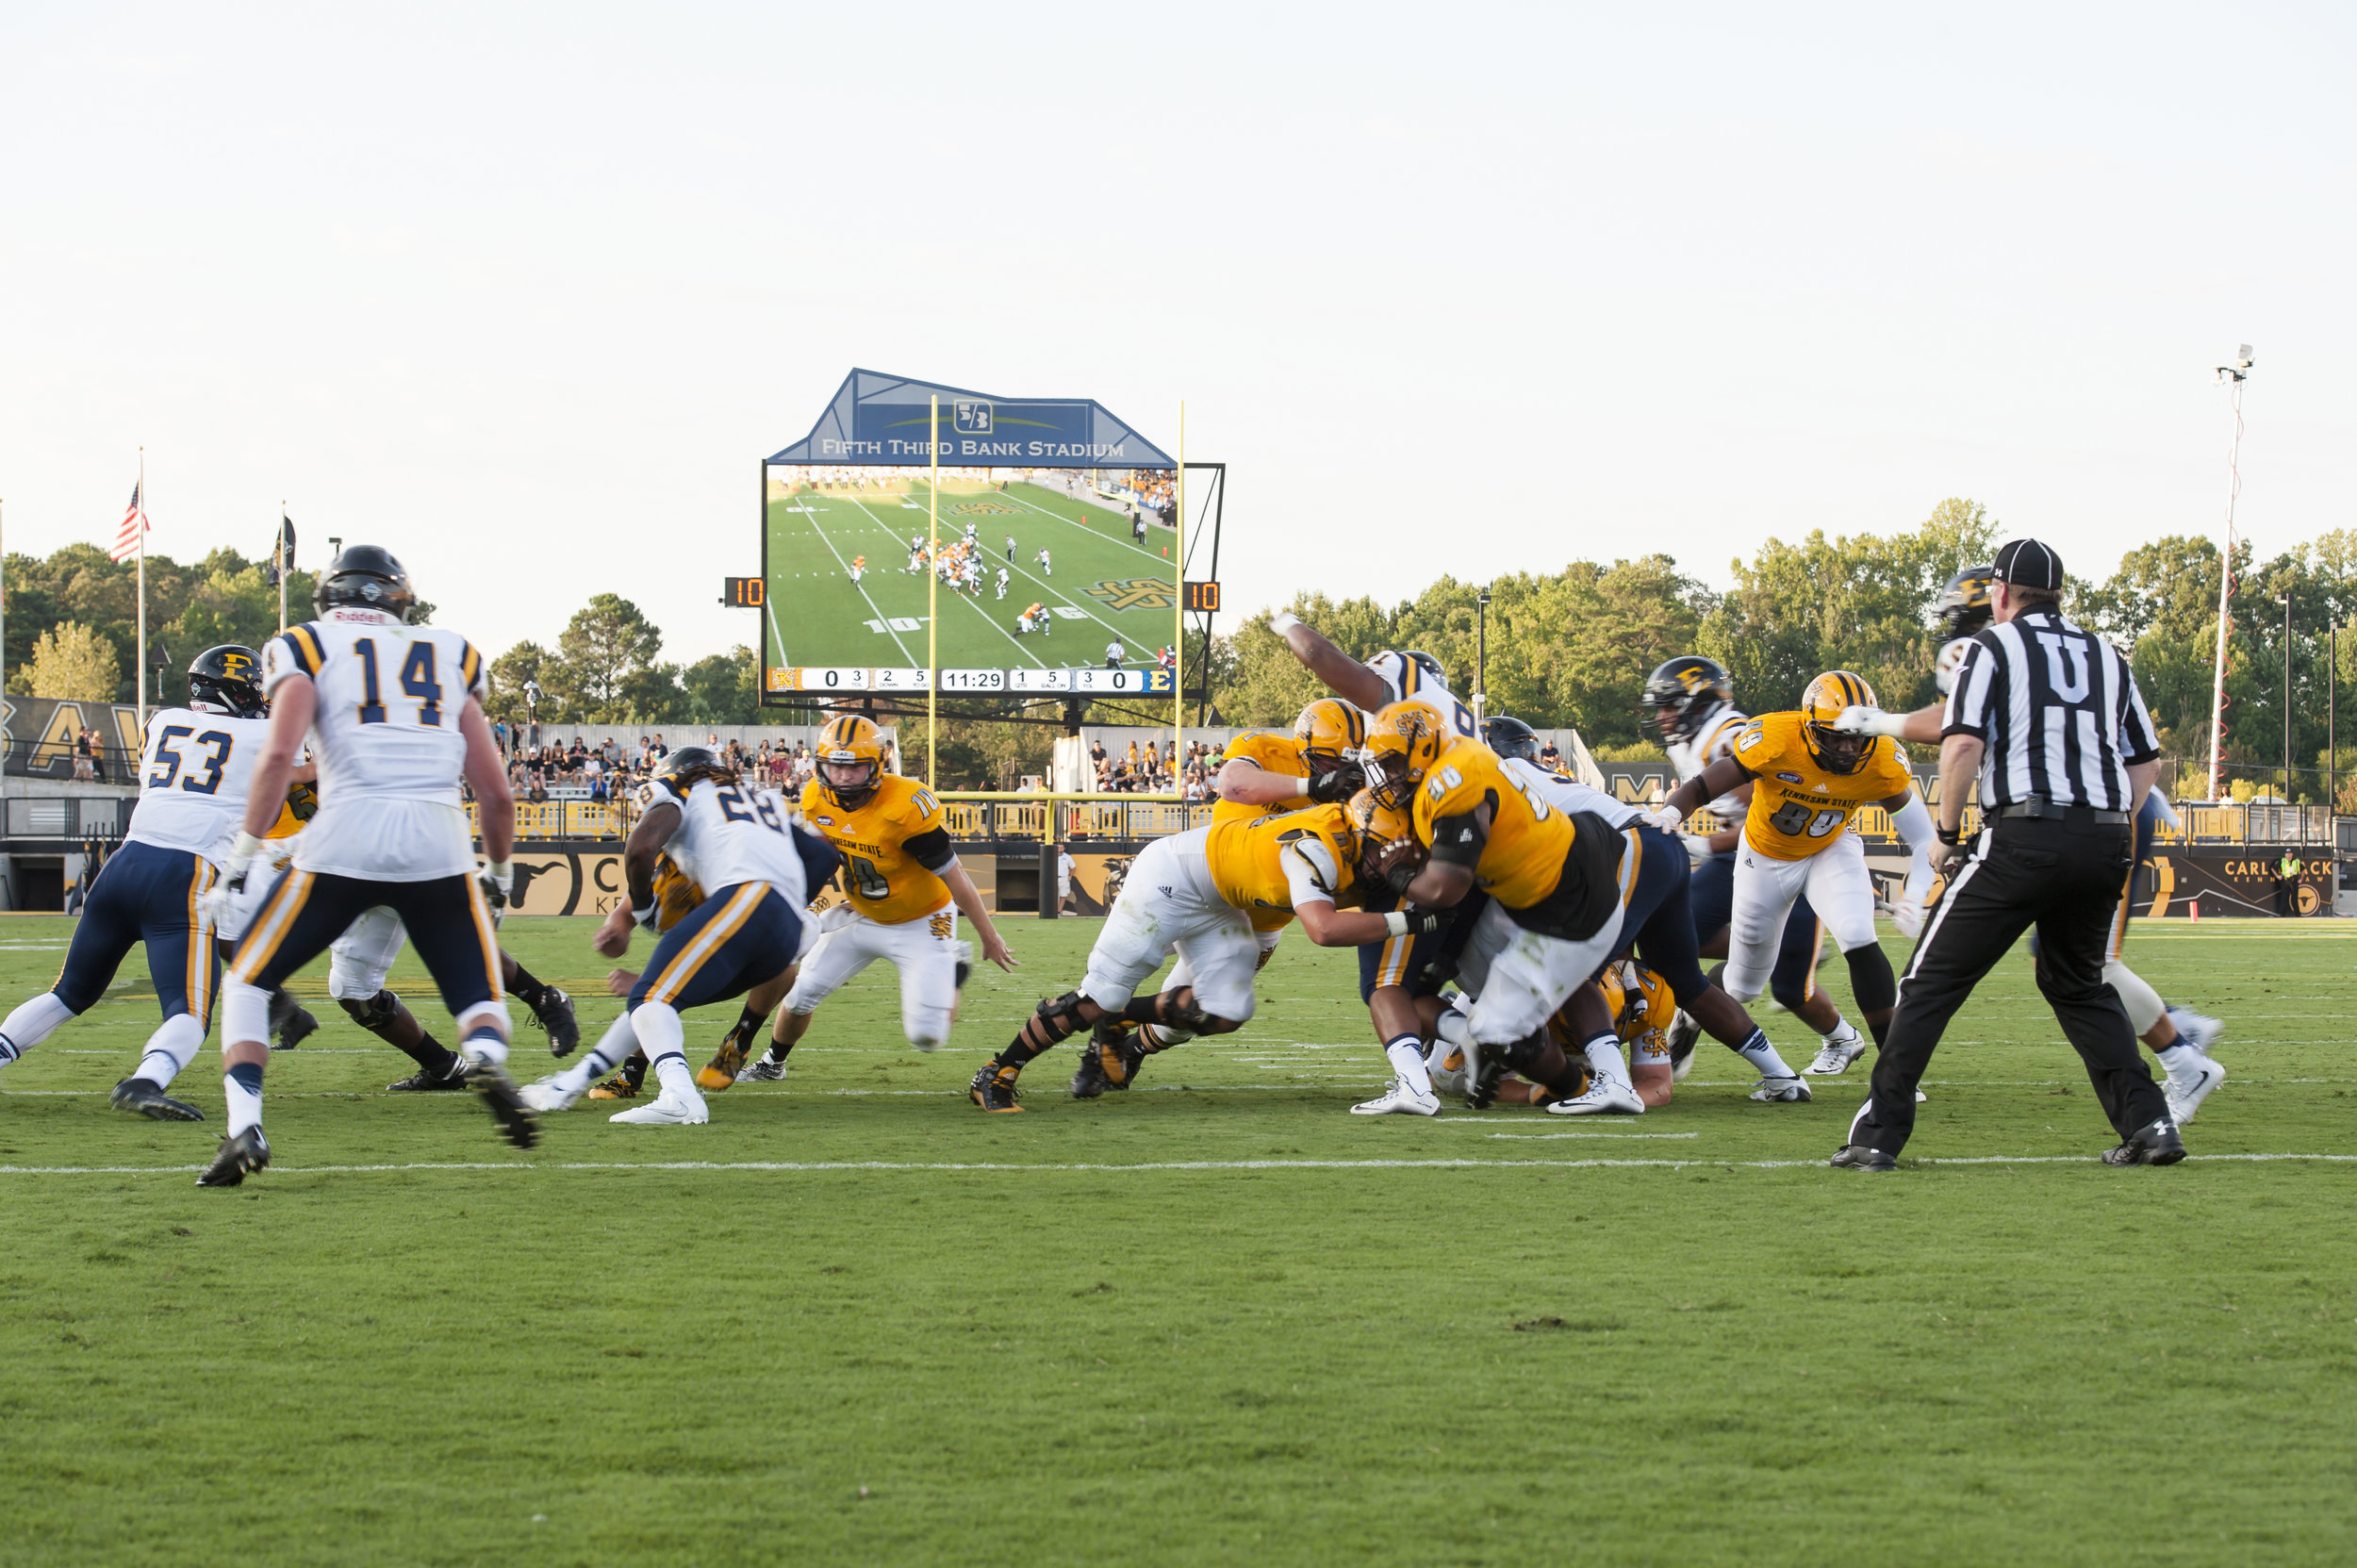 2016_Kennesaw_Football_v_ETS_LA_237.jpg